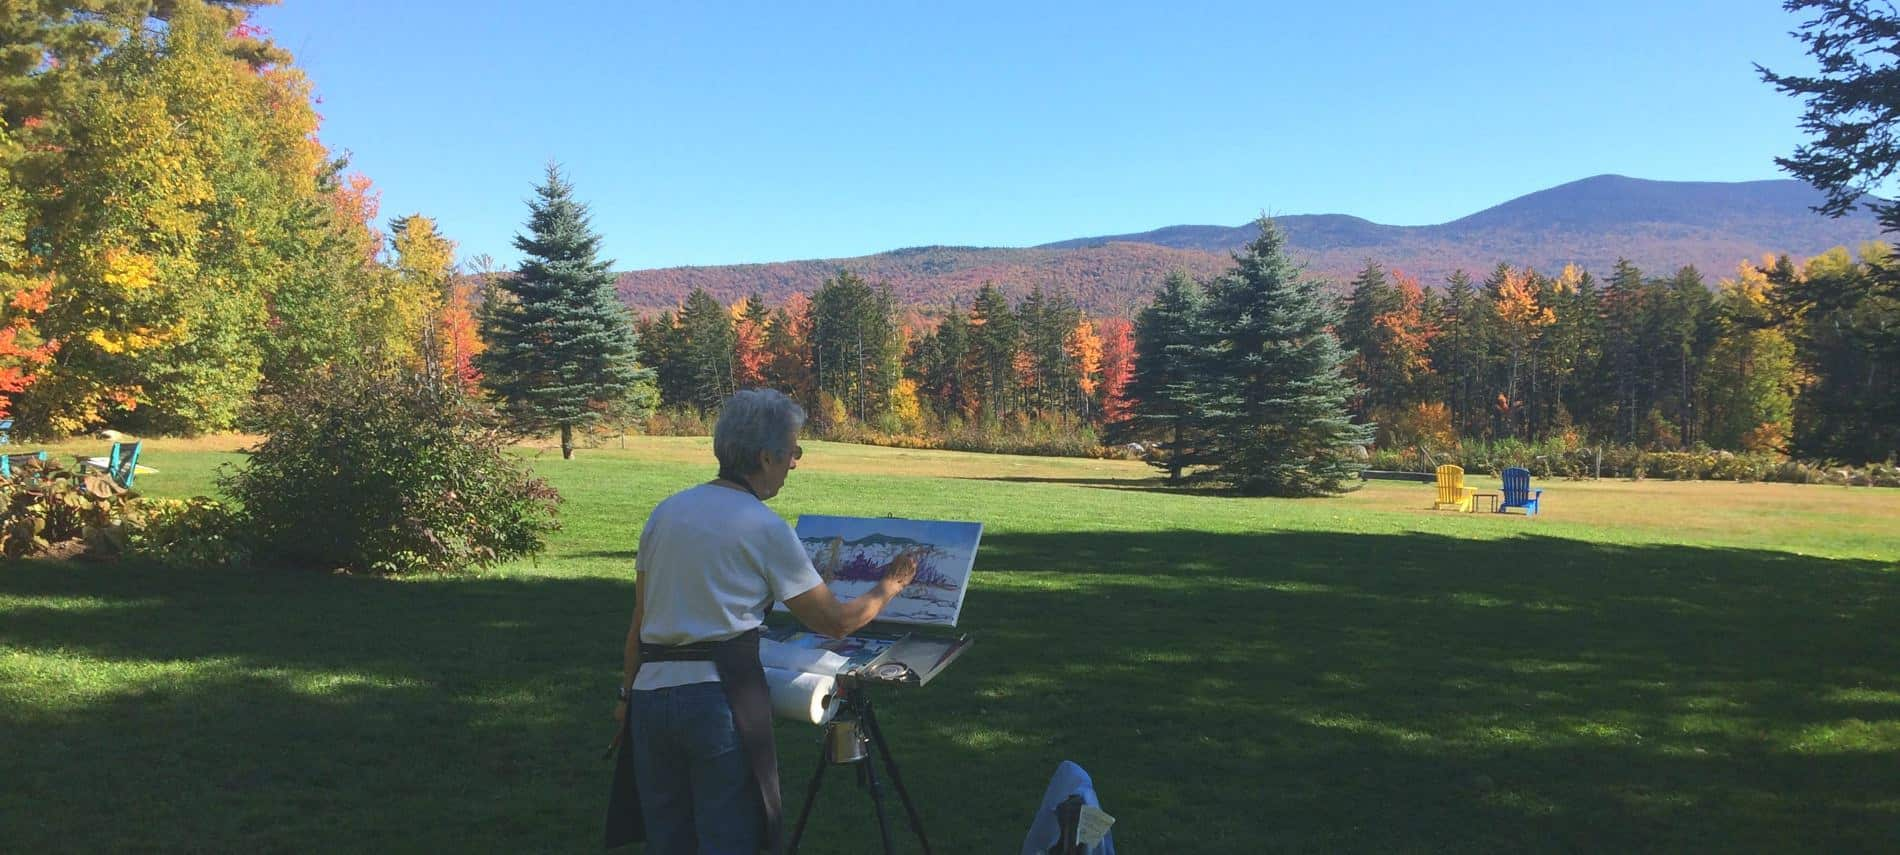 Person standing outside in the grass painting the view of green grass, colorful trees in the fall and distant hills